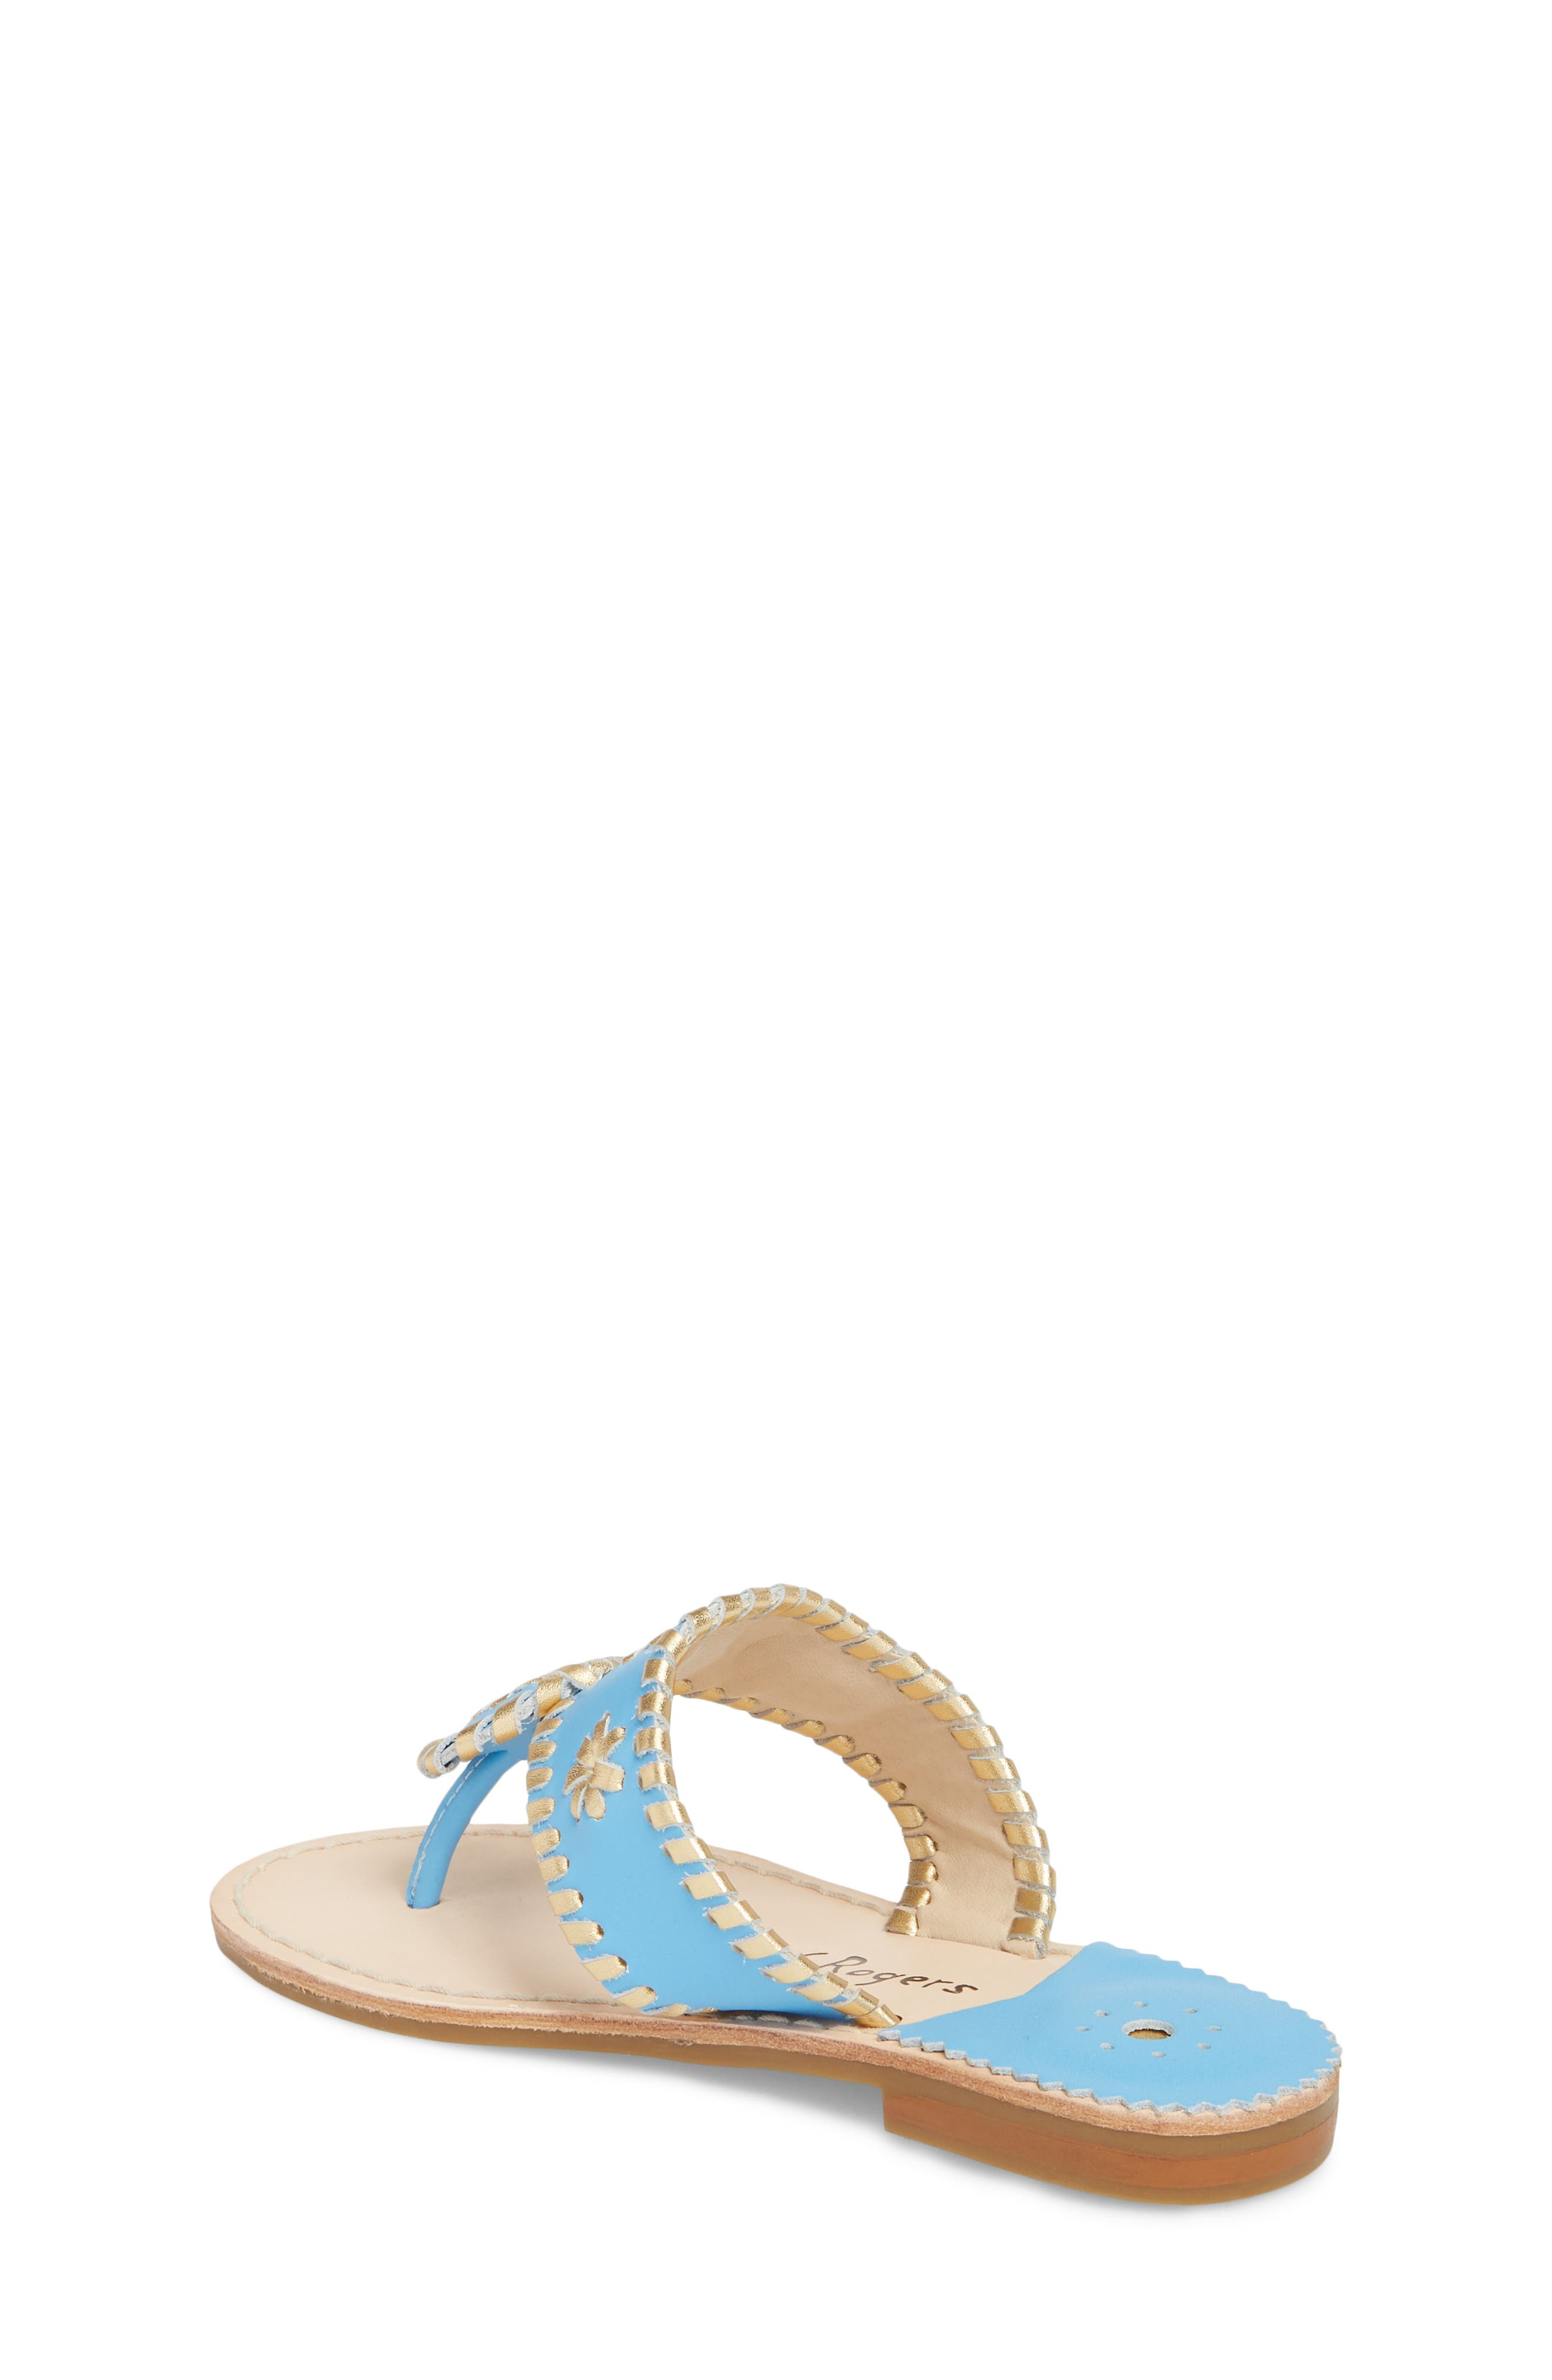 Miss Hollis Metallic Trim Thong Sandal,                             Alternate thumbnail 2, color,                             FRENCH BLUE/ GOLD LEATHER